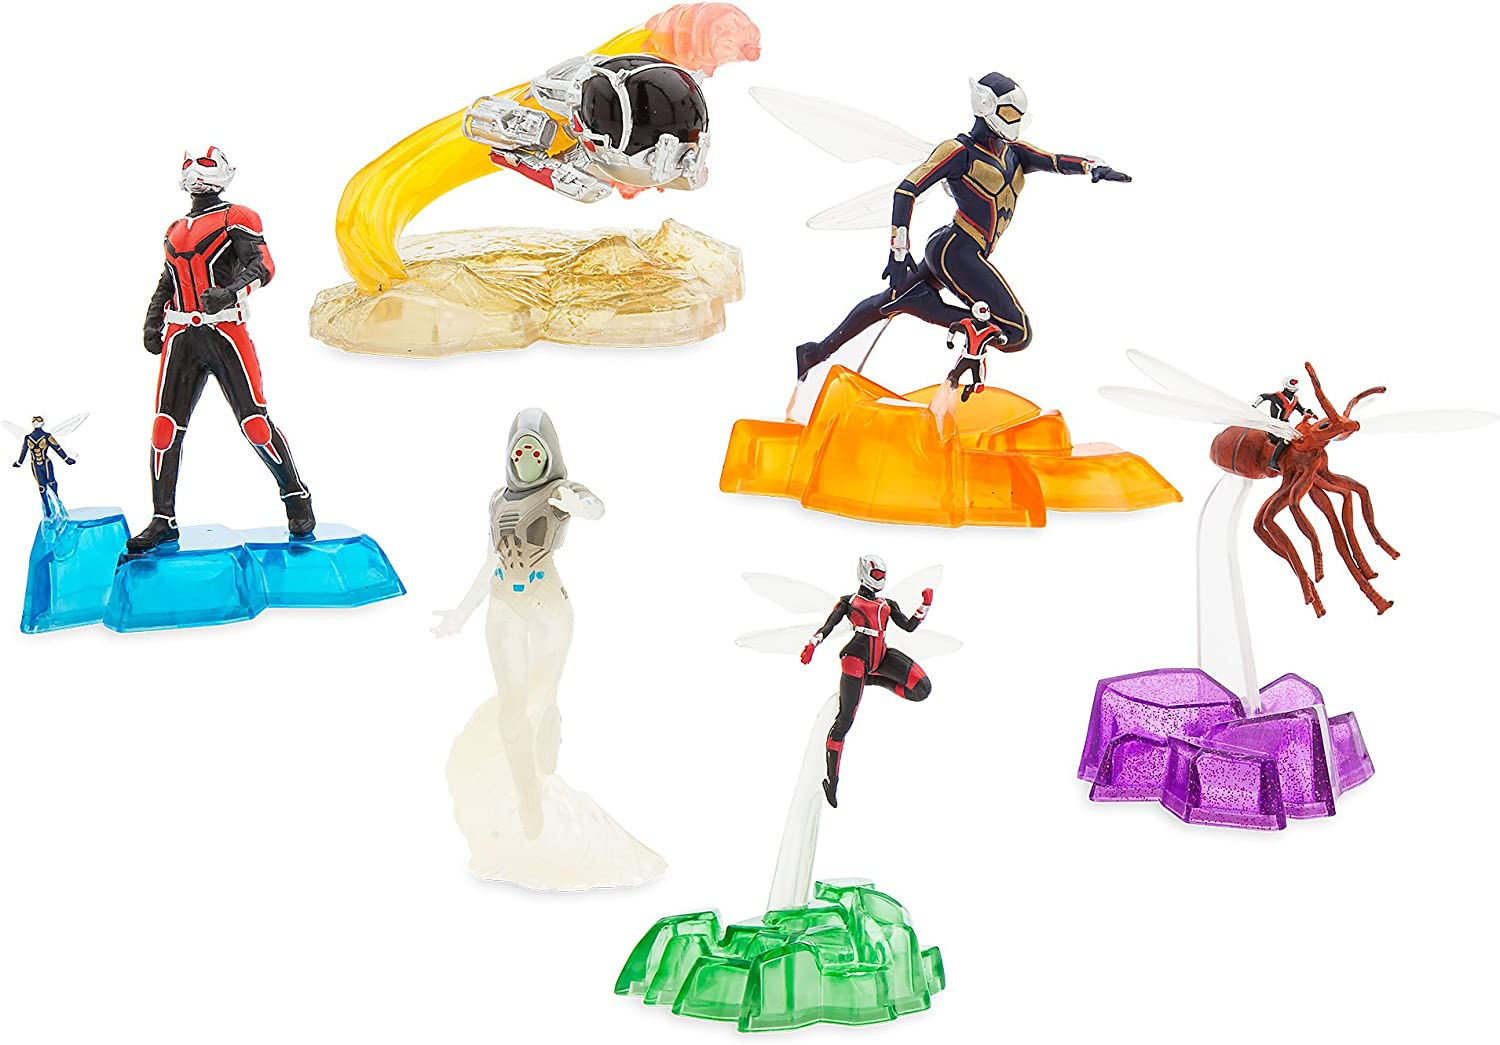 Marvel Antman and The Wasp Action Figure Set Figurine 6 Pack Ant-man free-ship